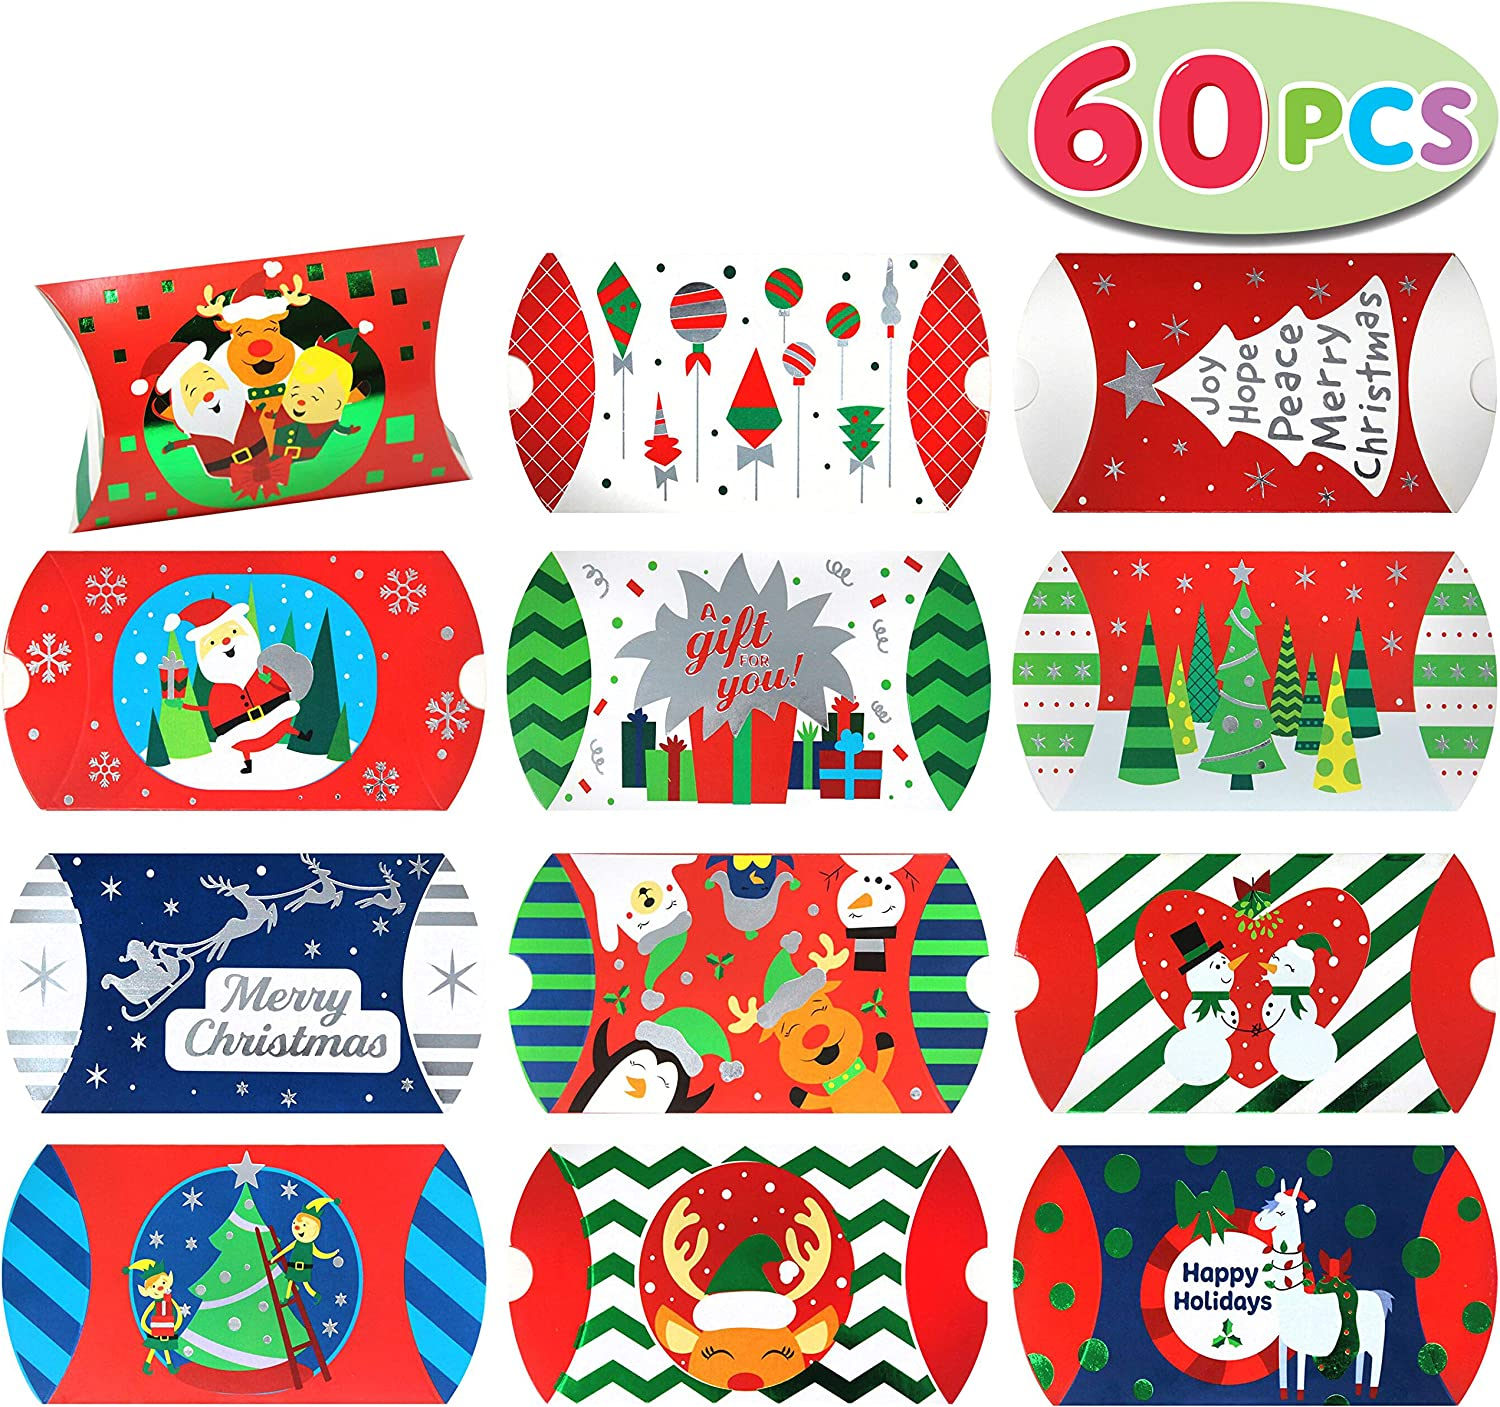 60 PCs Foil Christmas Card Pillow Box with 12 Colorful Designs for Gift Giving, Treat Boxes, Goodie Boxes, Xmas Craft Party Favors